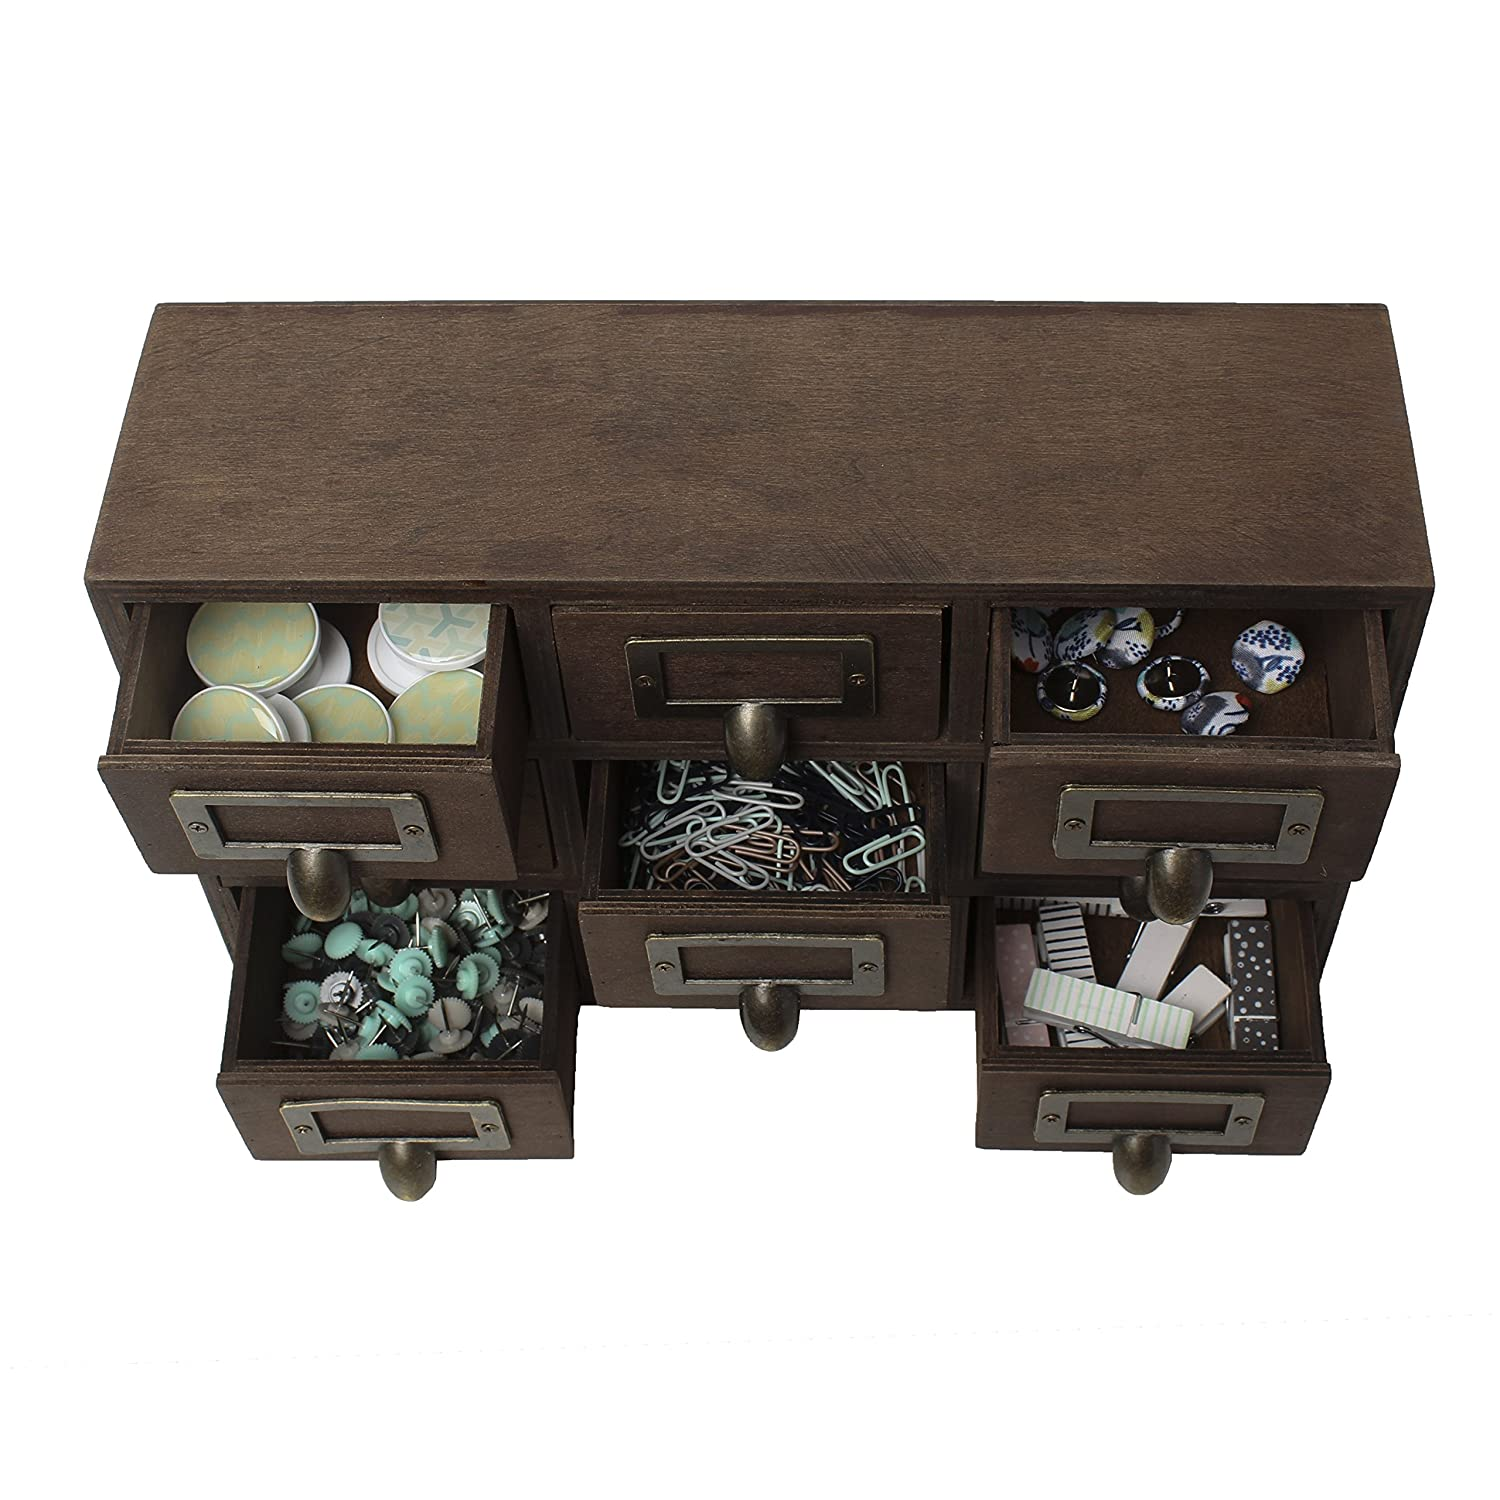 Marvelous Amazon.com: Kate And Laurel Desktop Solid Wood Apothecary Drawer Set,  Includes 9 Drawers With Metal Label Holders, Rustic Brown Finish: Home U0026  Kitchen